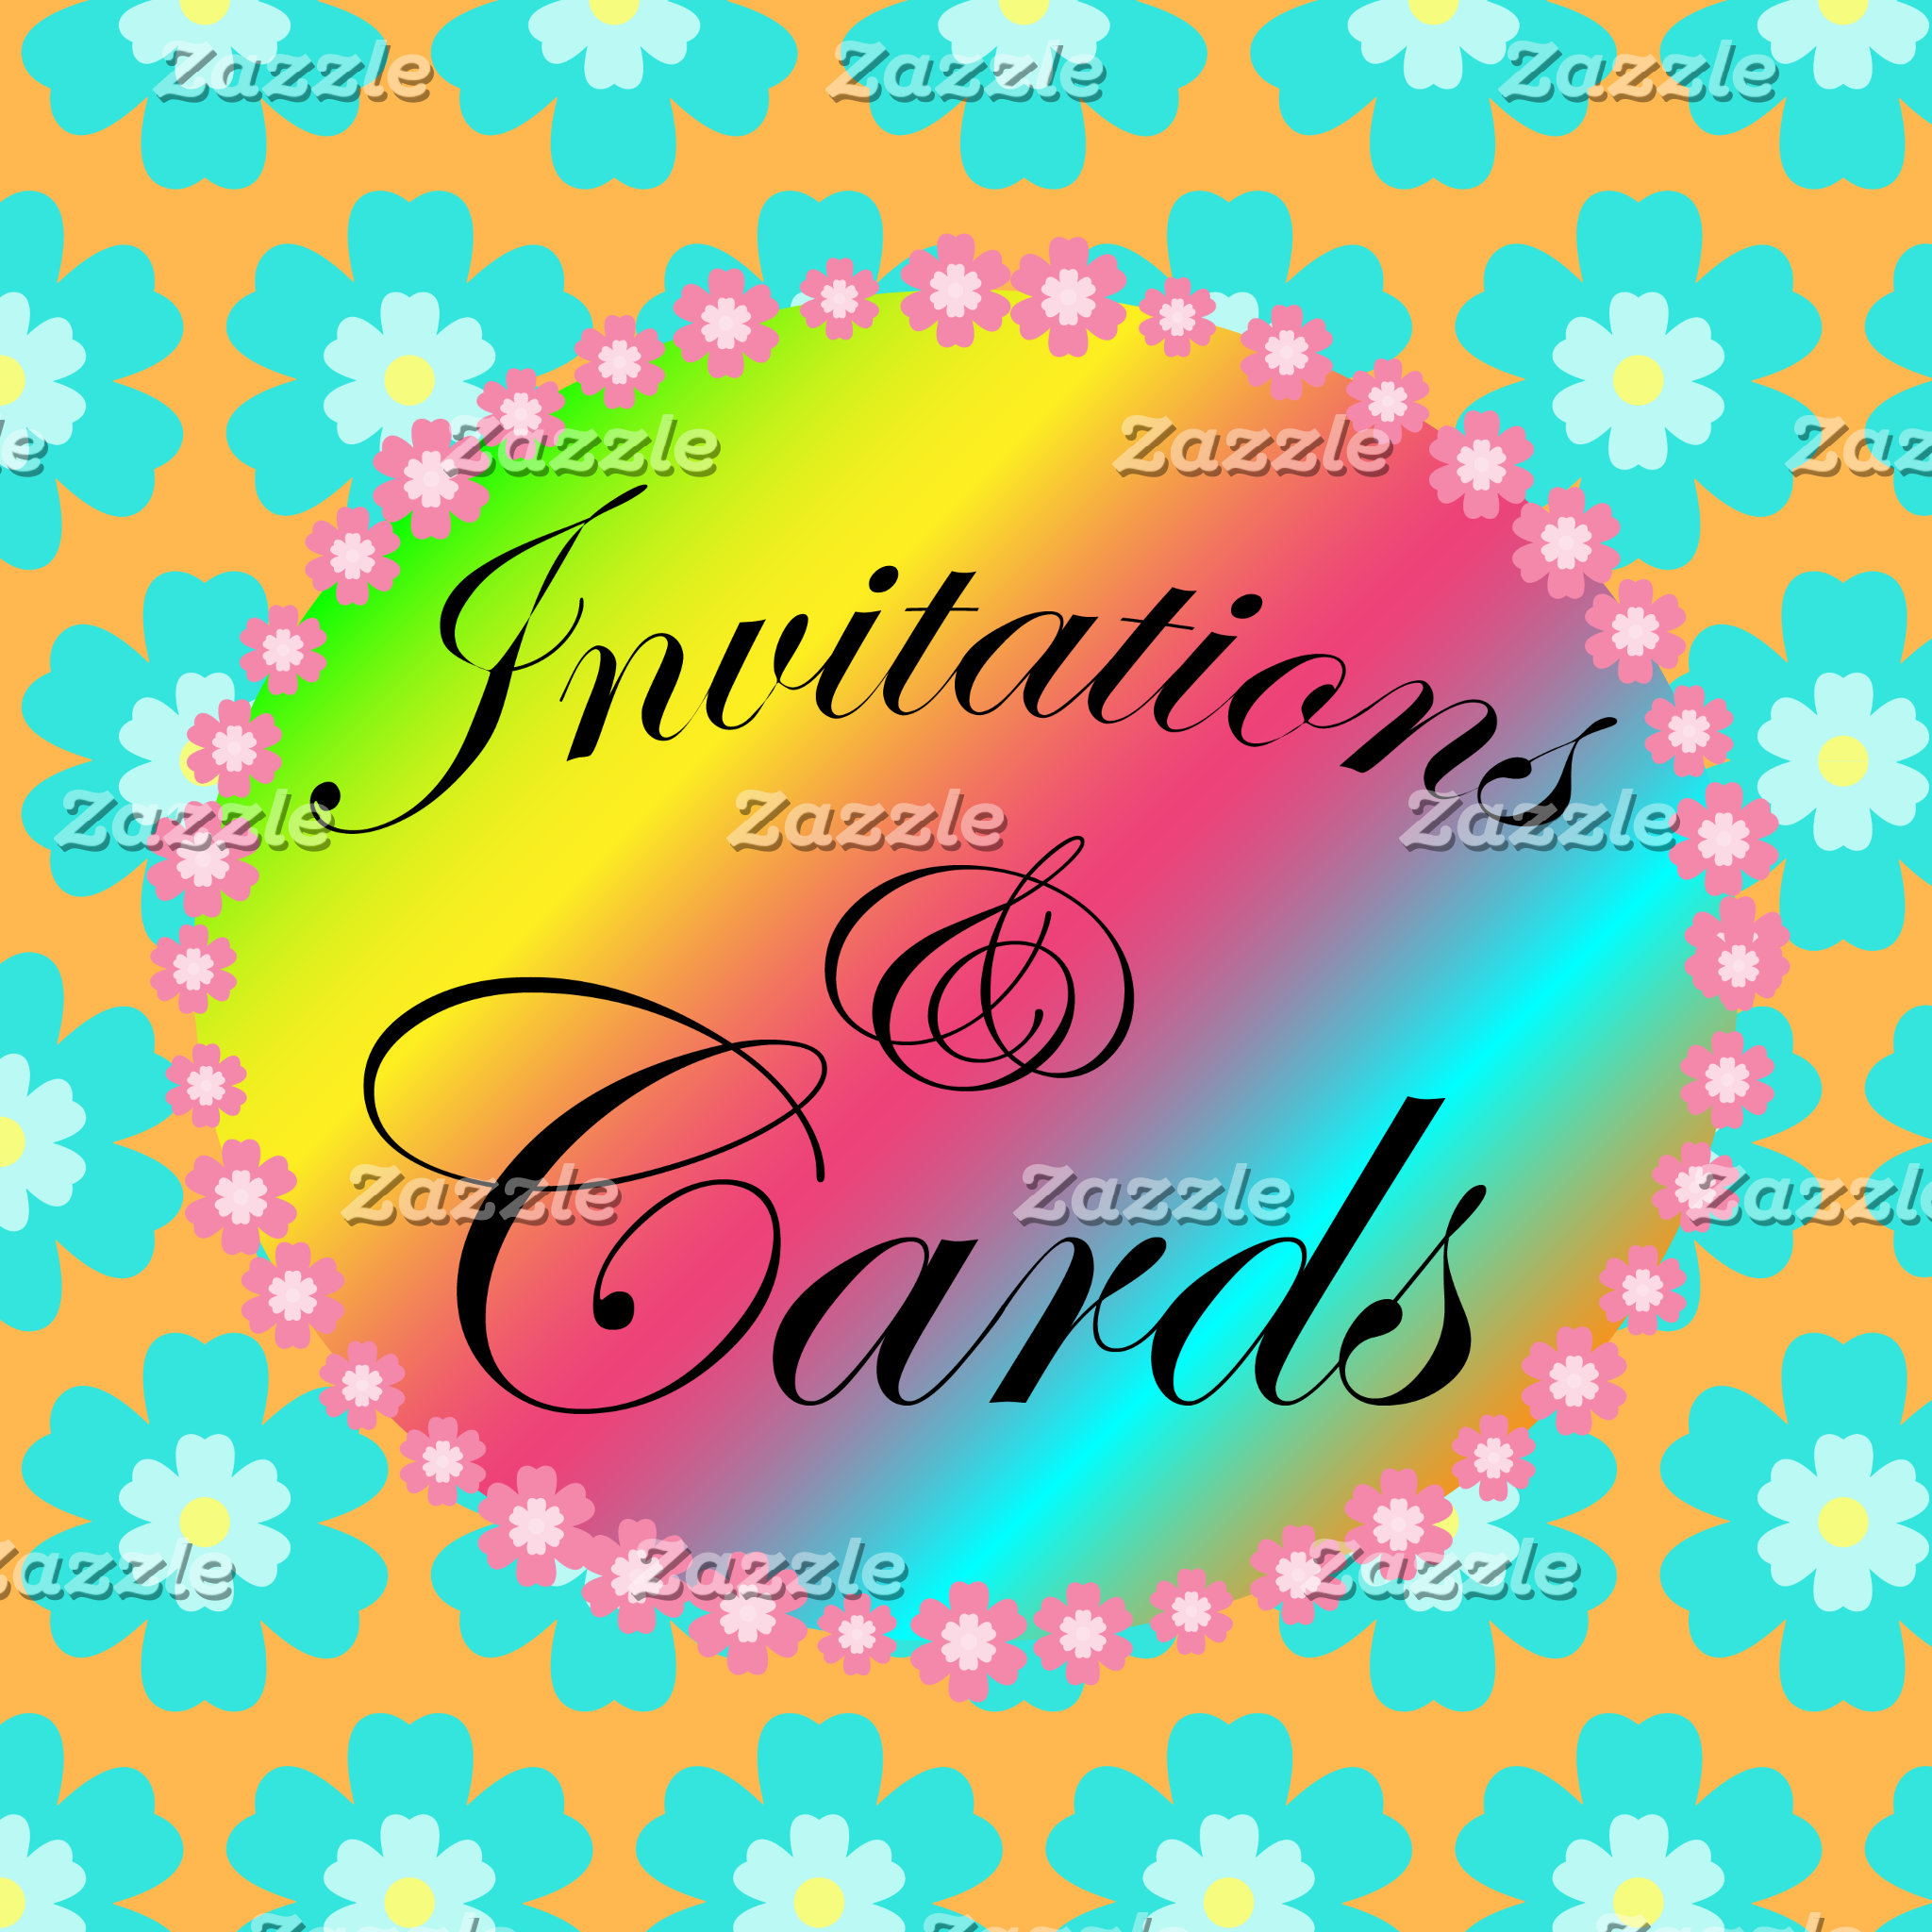 12. Invitations And Cards